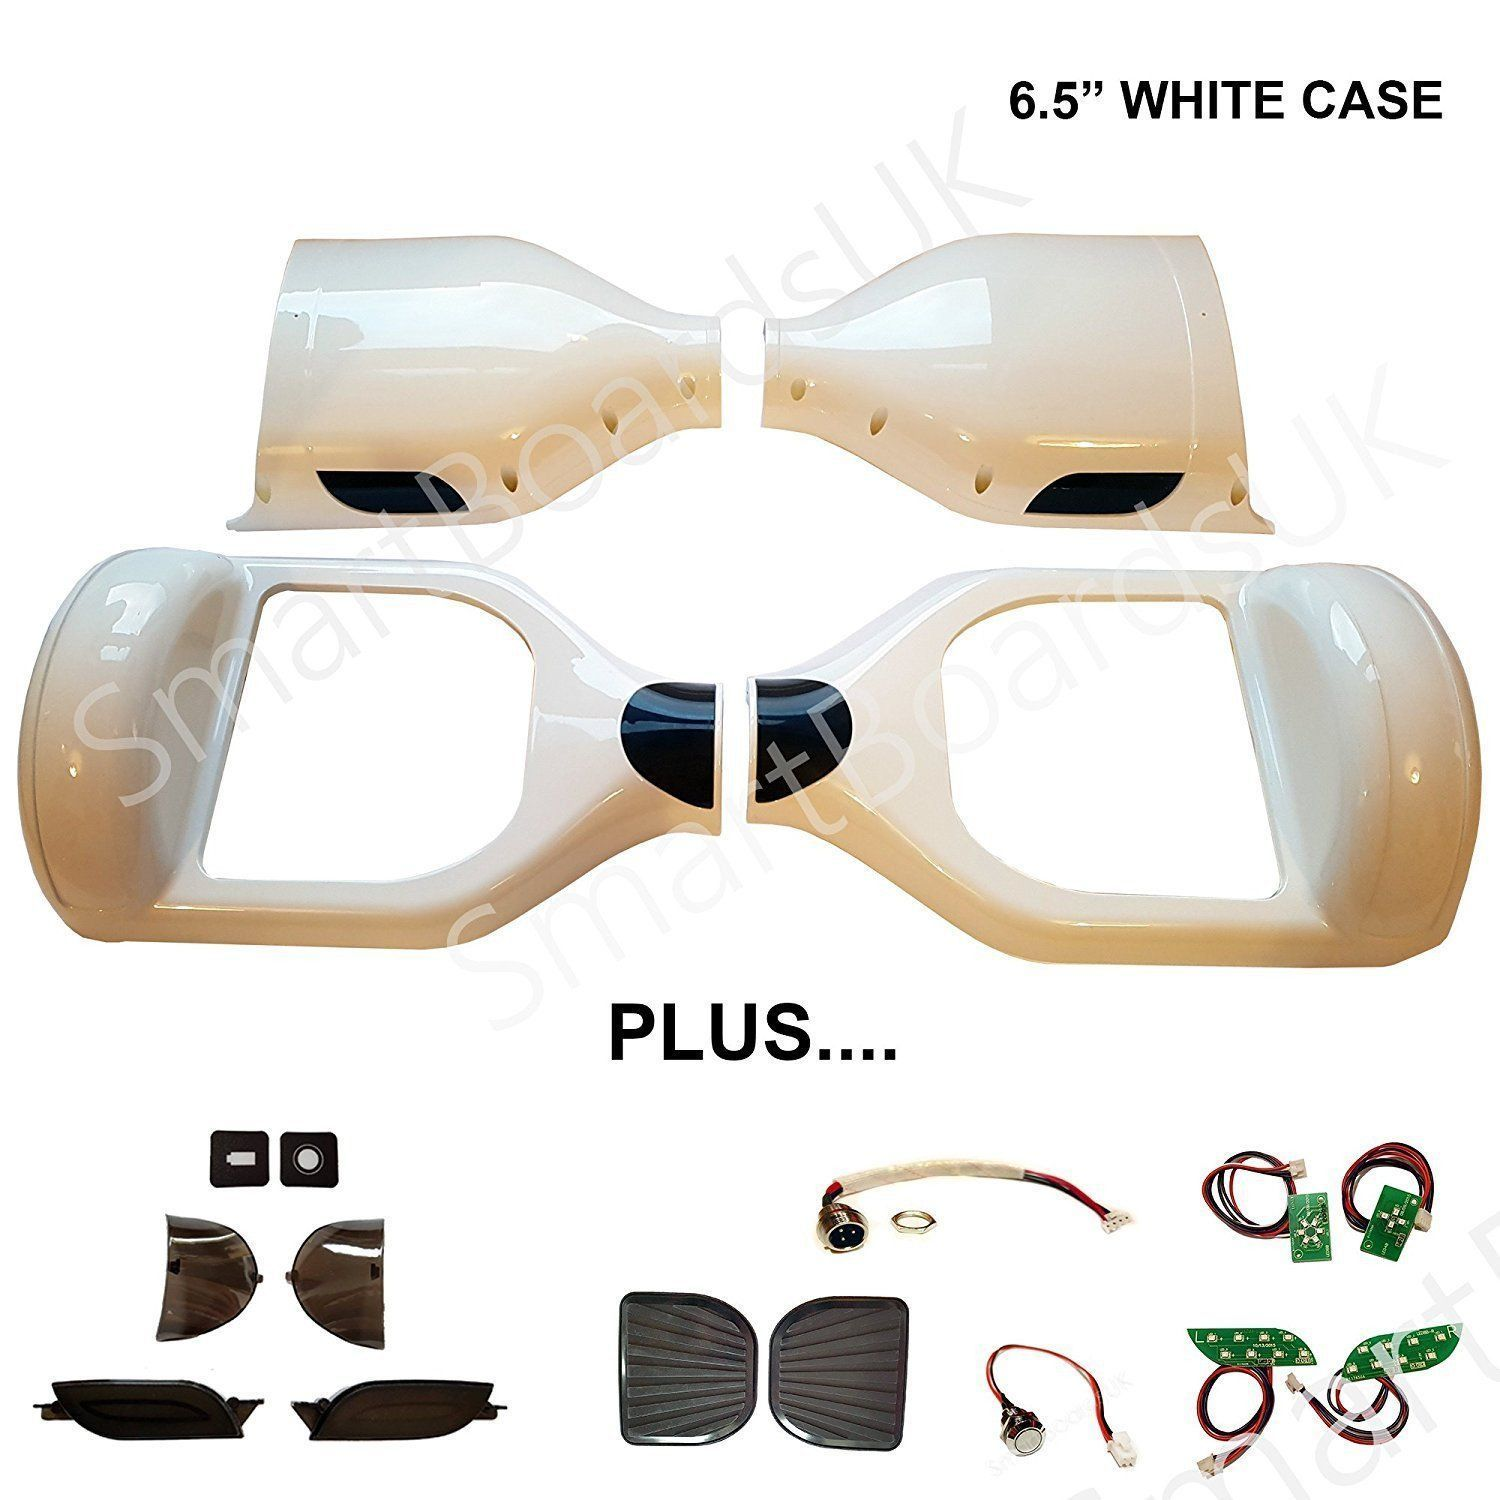 6.5 INCH STANDARD CASE SHELL KIT - BUMP STRIP ARCH (6.5